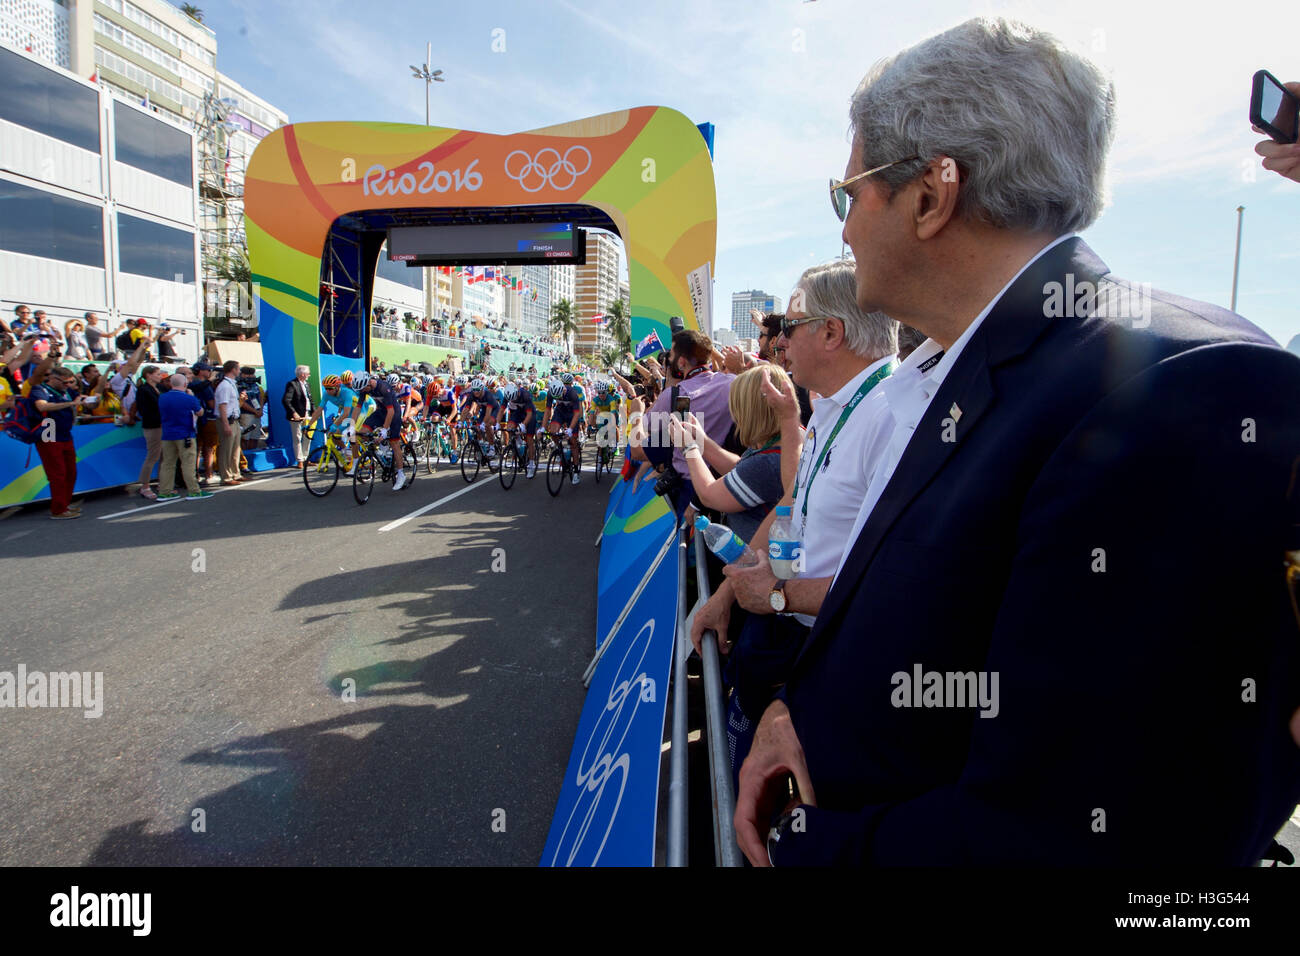 U.S. Secretary of State John Kerry watches the start of the Olympic men's cycling race along the Copacobana - Stock Image